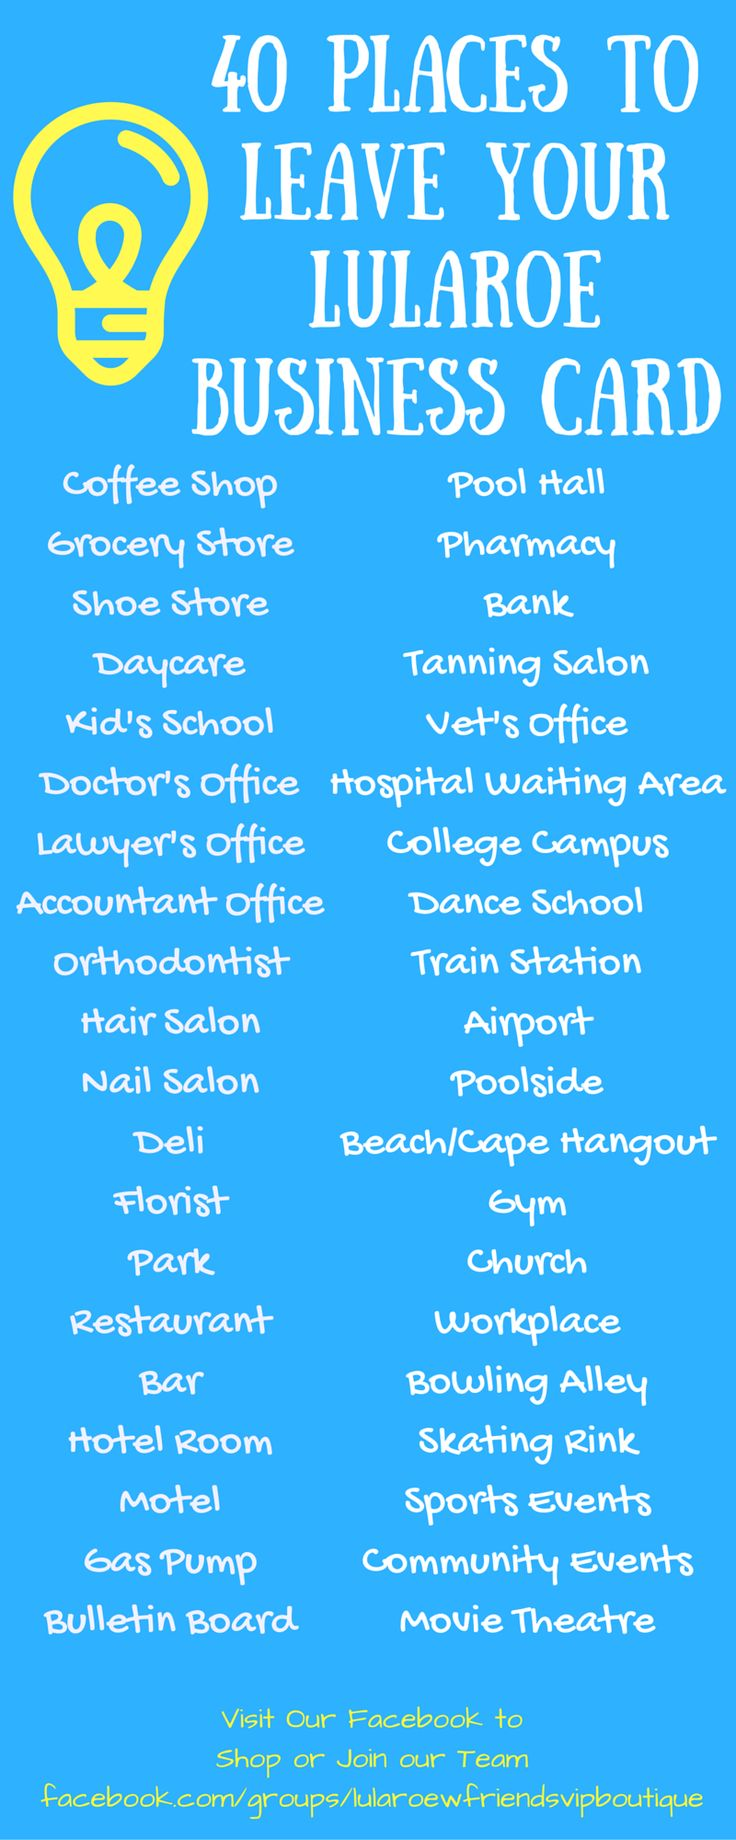 40 Places to leave a LuLaRoe Business Card. Visit our Facebook group to learn more and to shop our collection https://www.facebook.com/groups/lularoewithfriendsvipboutique/